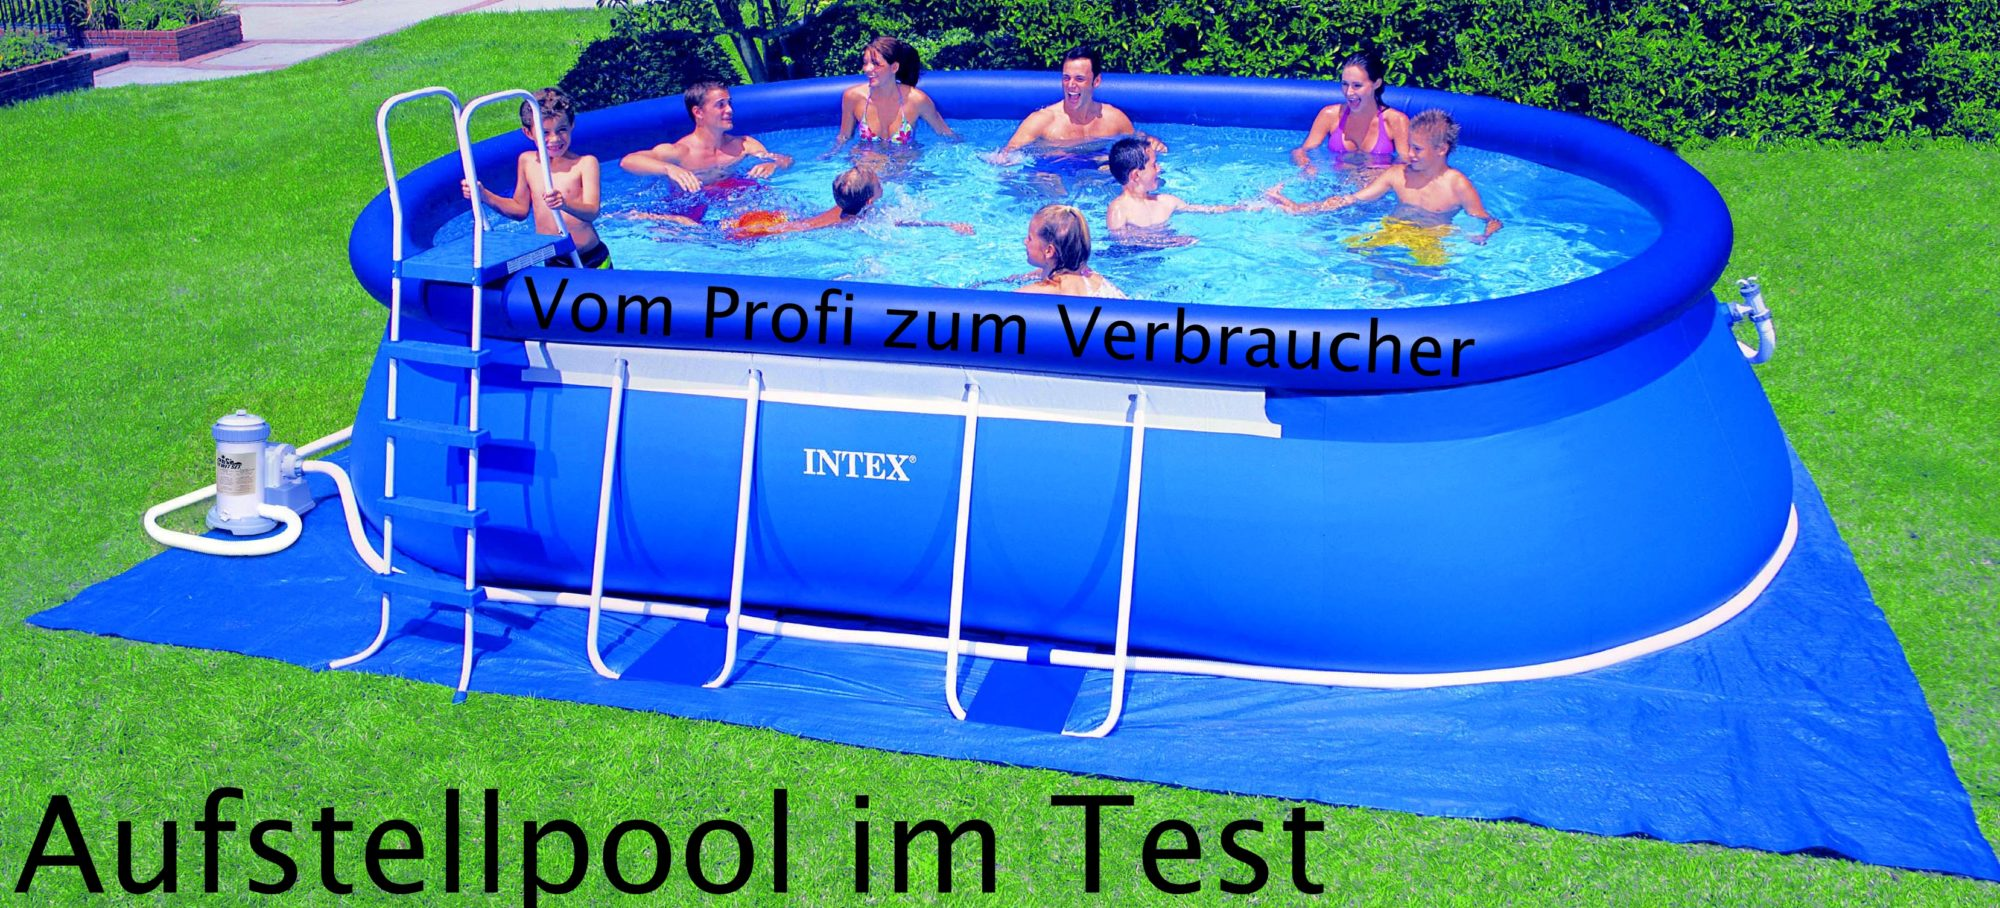 intex aufstellpool frame pool set rondo testbericht. Black Bedroom Furniture Sets. Home Design Ideas